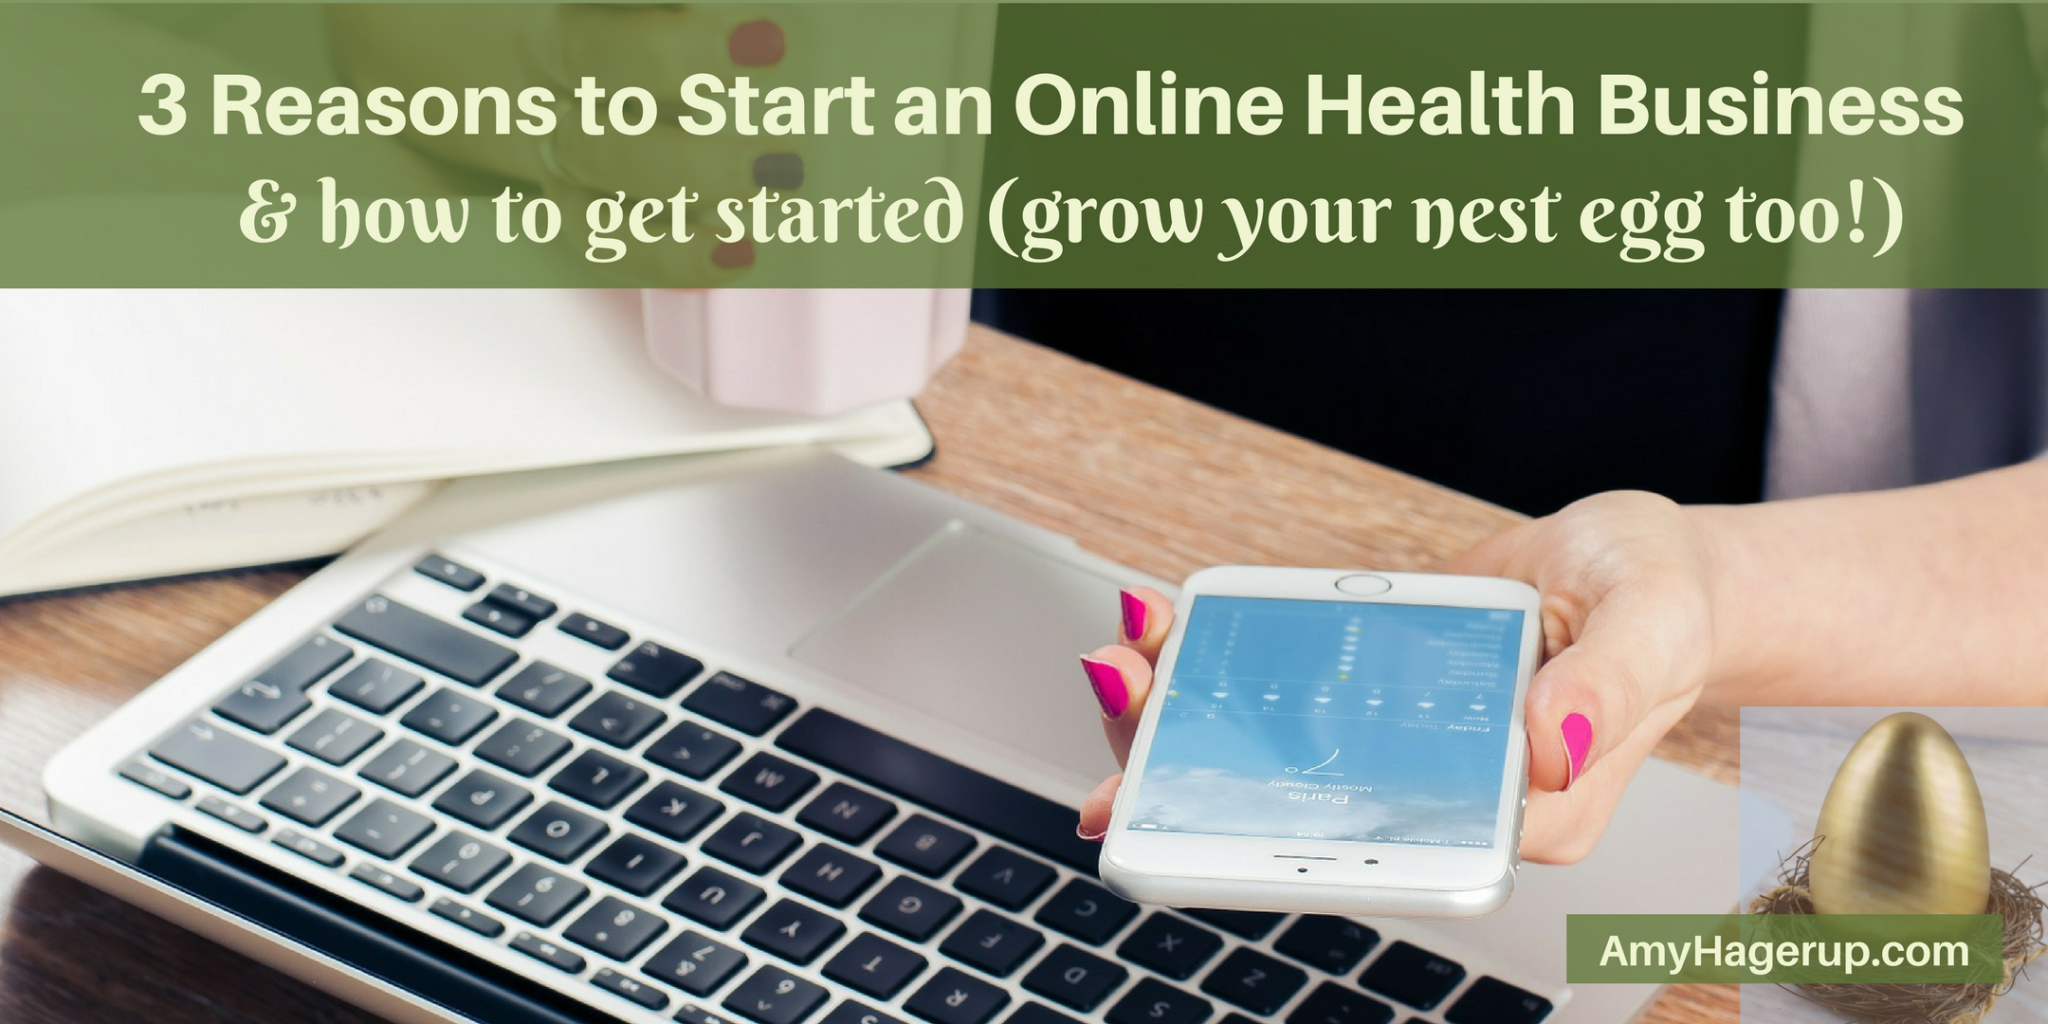 Want to start a home business? Check out 3 reasons to start an online health business and how to get started.